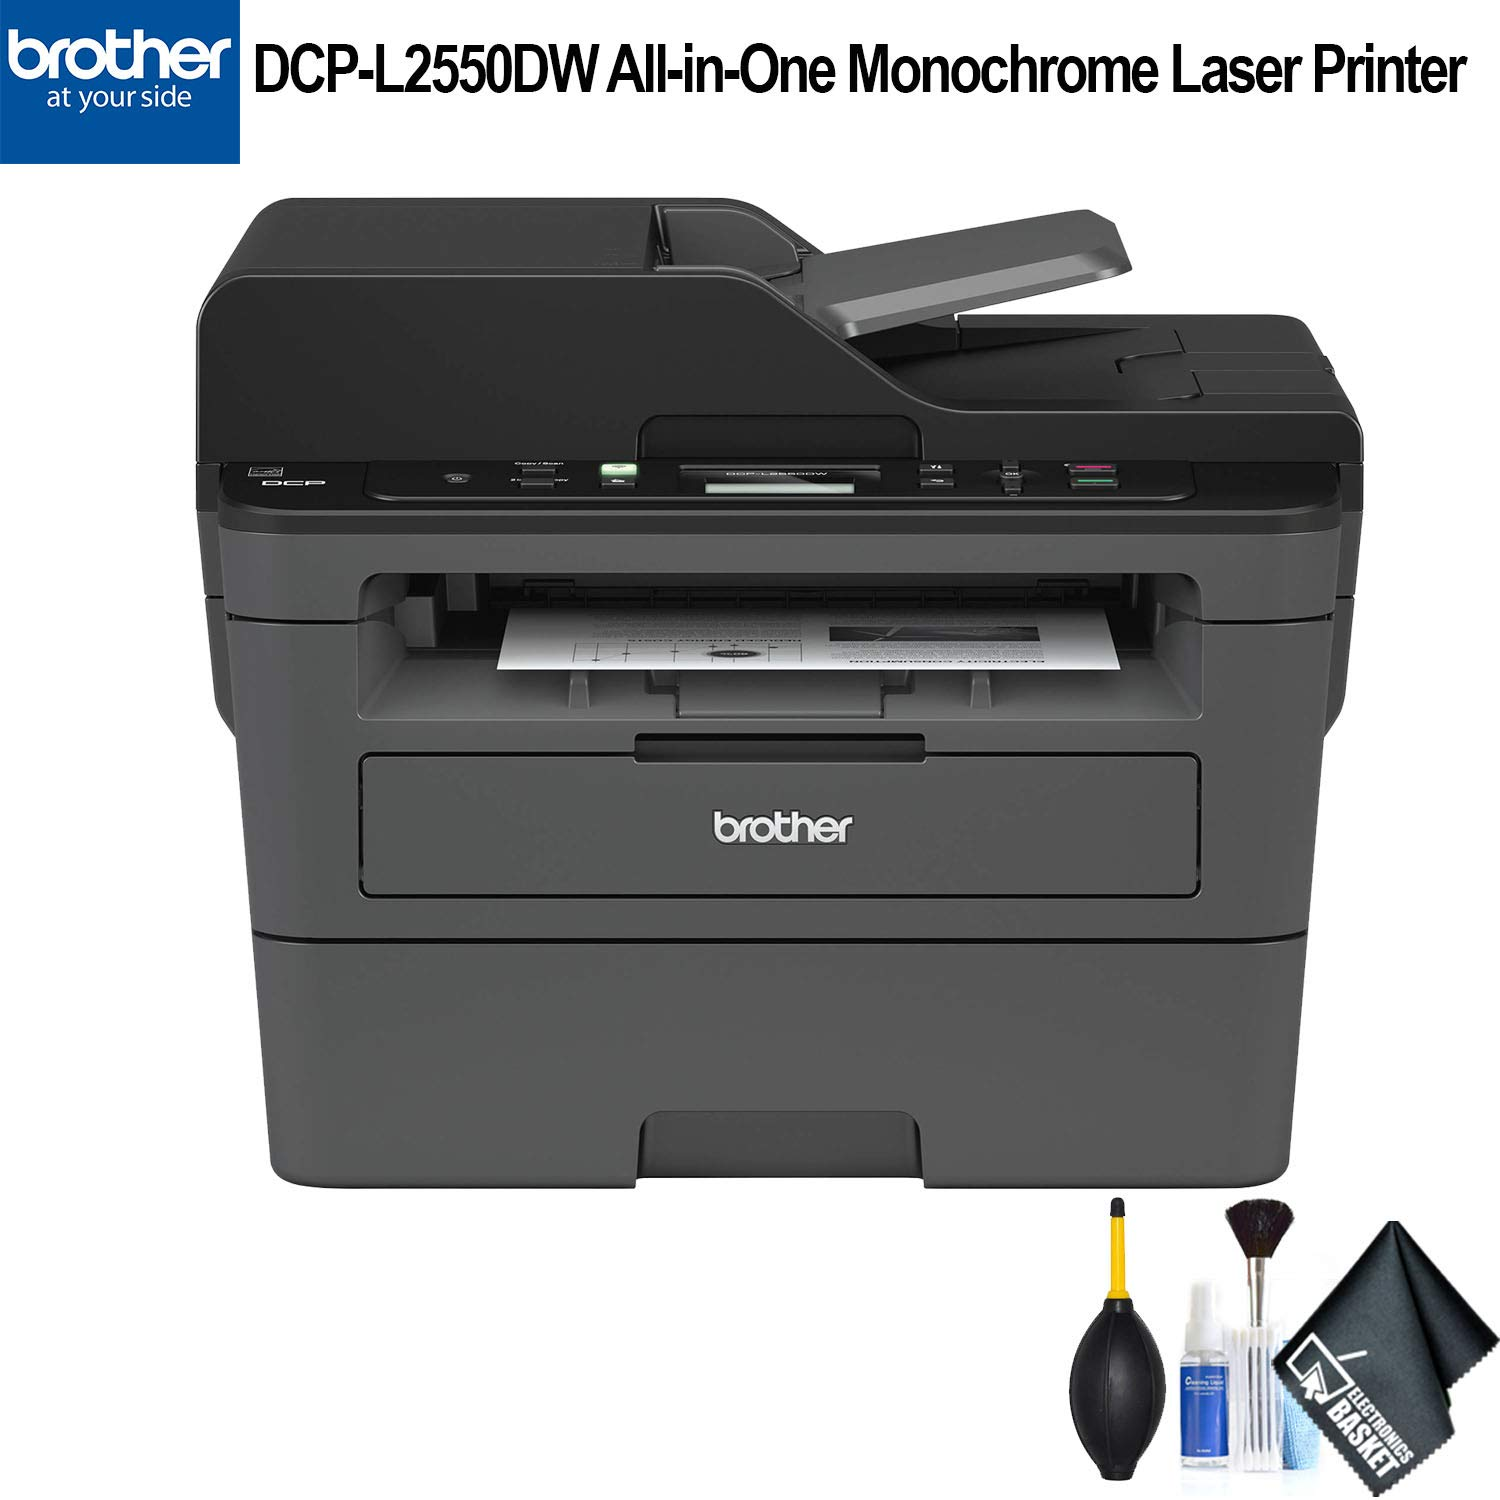 Brother DCP-L2550DW All-in-One Monochrome Laser Printer (DCP-L2550DW) Essential Bundle by Brother (Image #1)